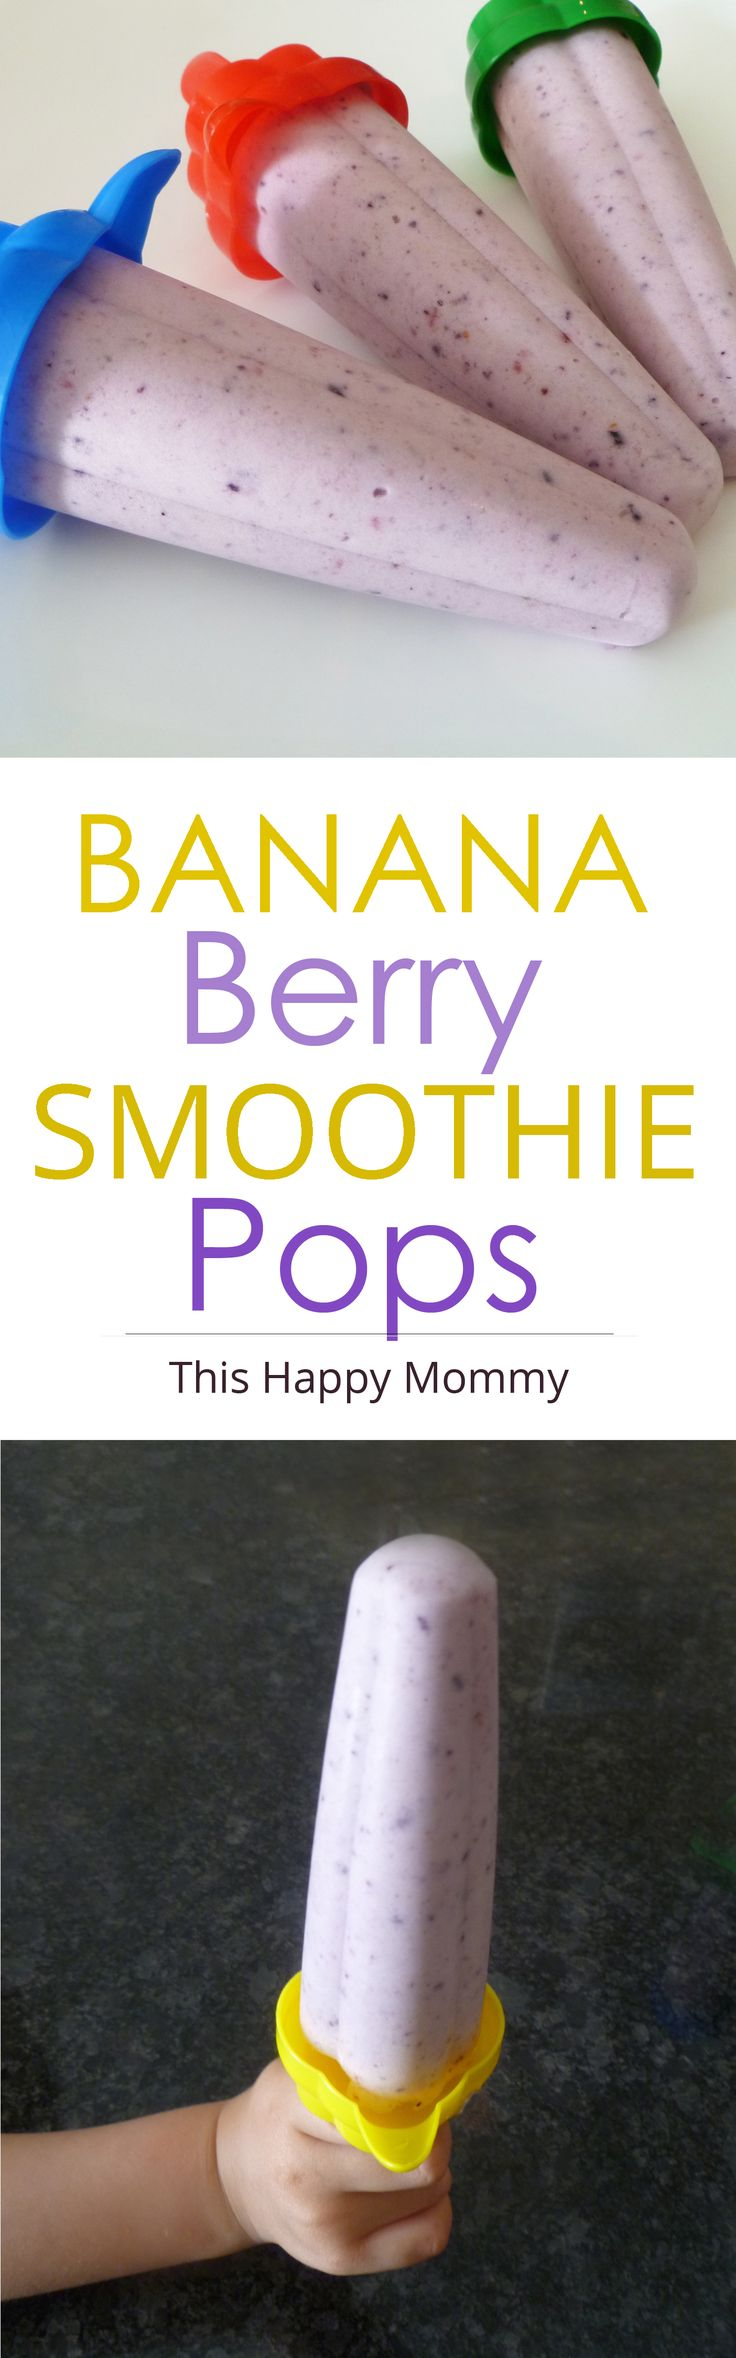 Banana Berry Smoothie Pops -- Stay cool all summer long with this four-ingredient, smoothie style popsicle. | thishappymommy.com